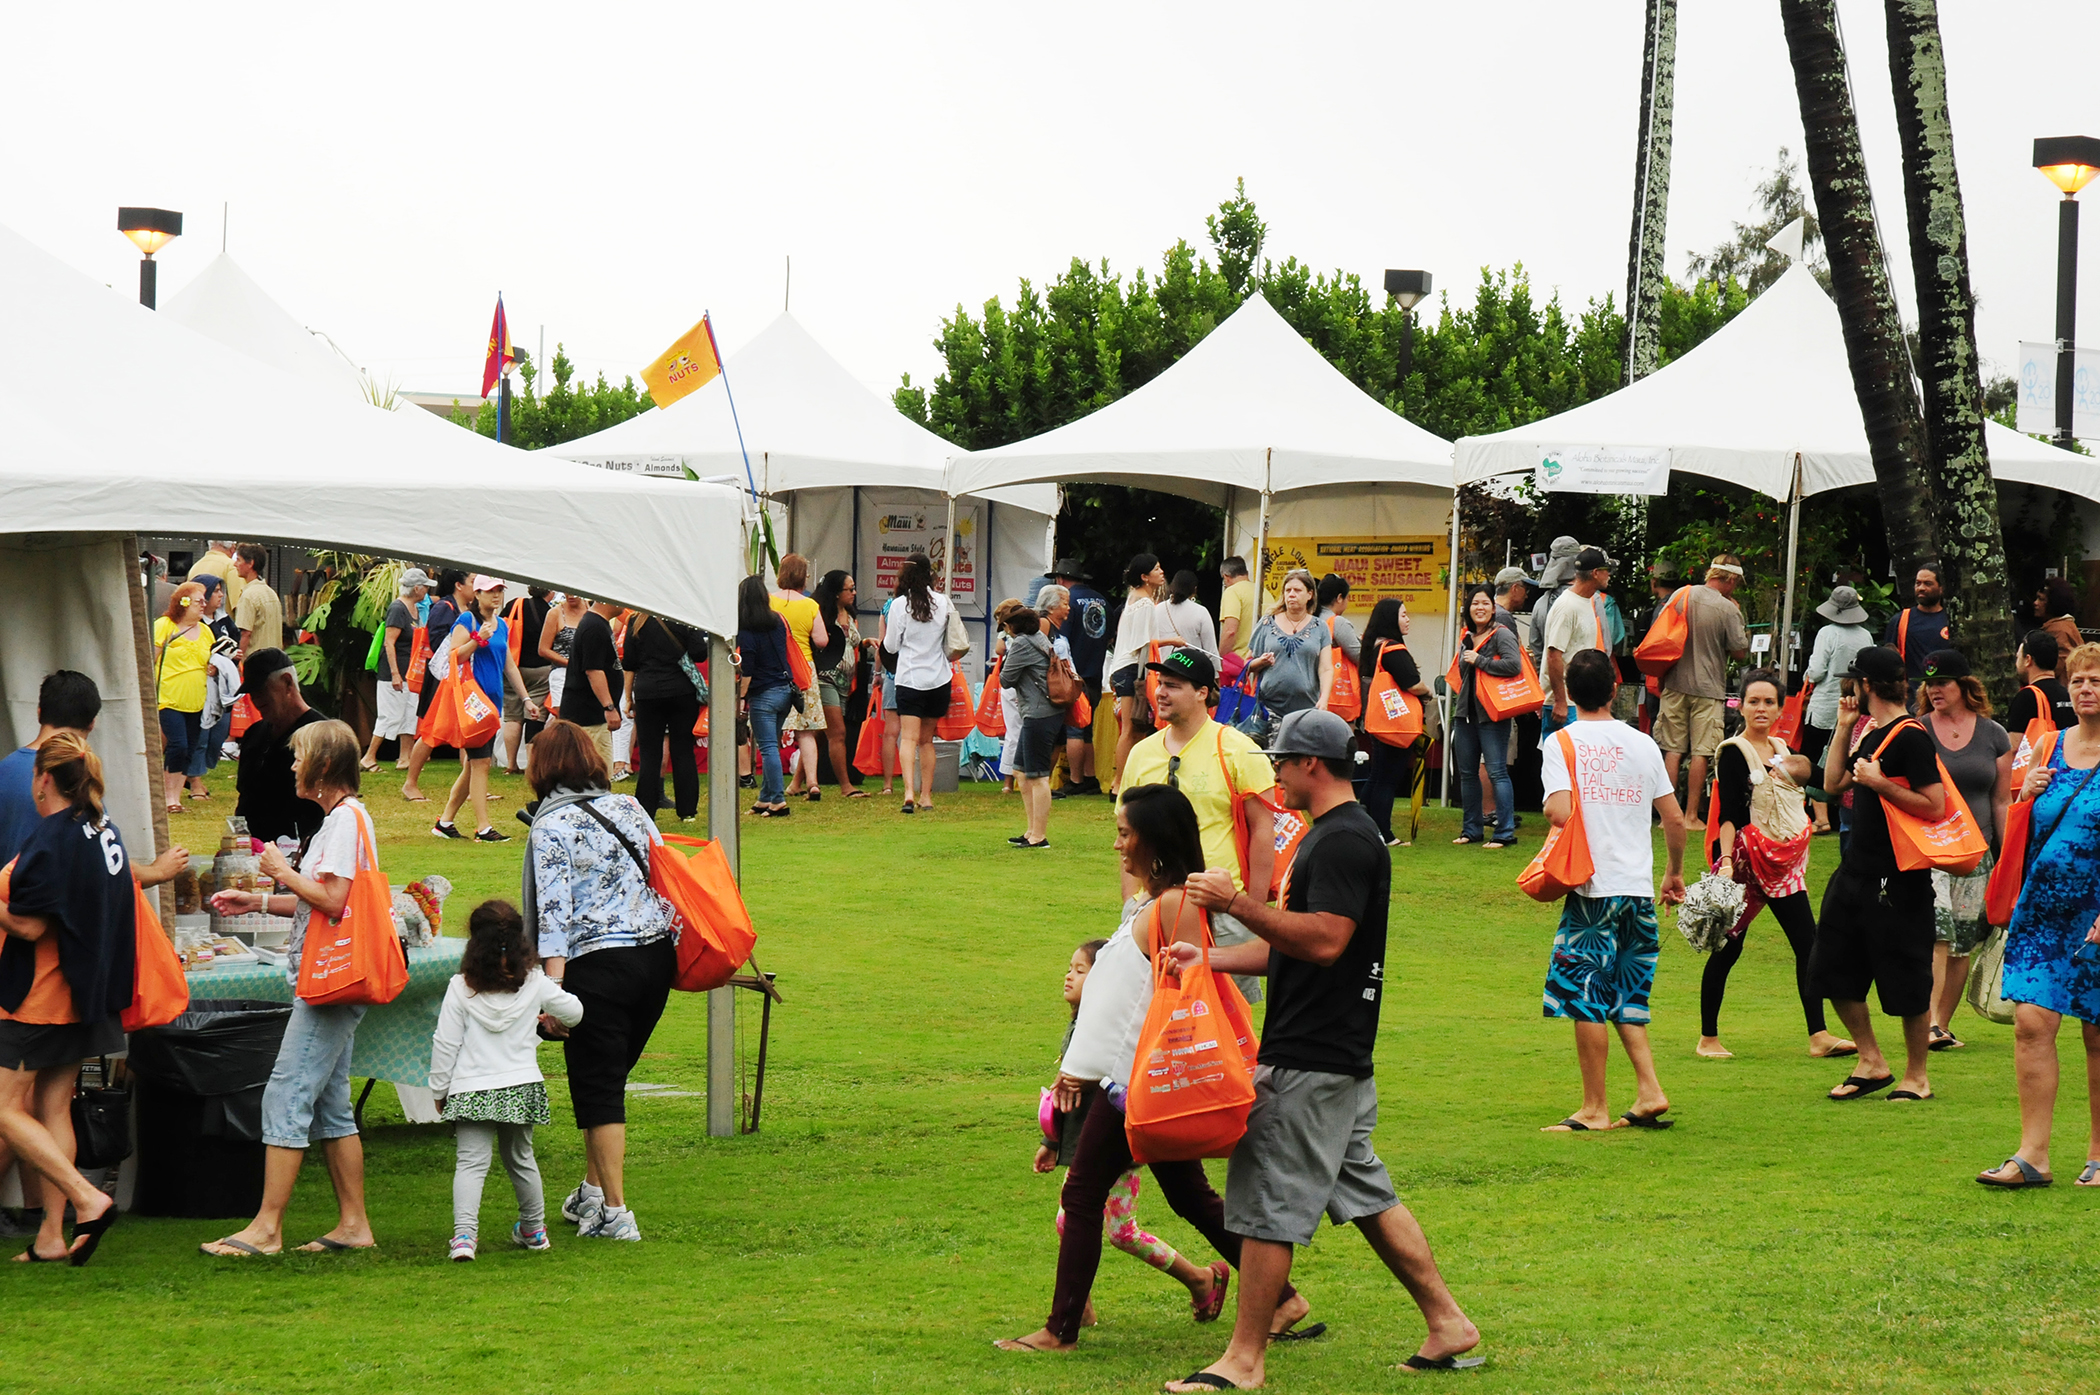 The inaugural Made in Maui County Festival in 2014 attracted thousands of visitors and residents for a full day of shopping, activities, food and fun. This year, the Festival's organizers anticipate the event will be bigger and better than ever. Maui County photo.